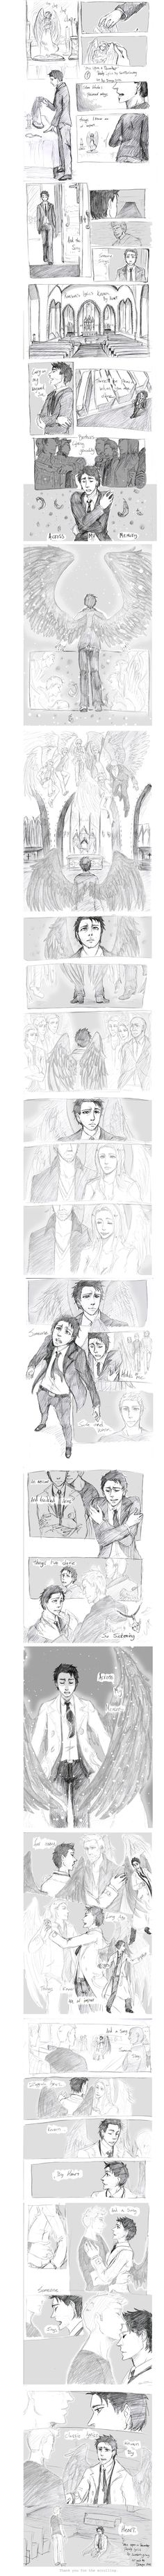 'Once Upon a December' Parody -Destiel- SPN by EspadaDina